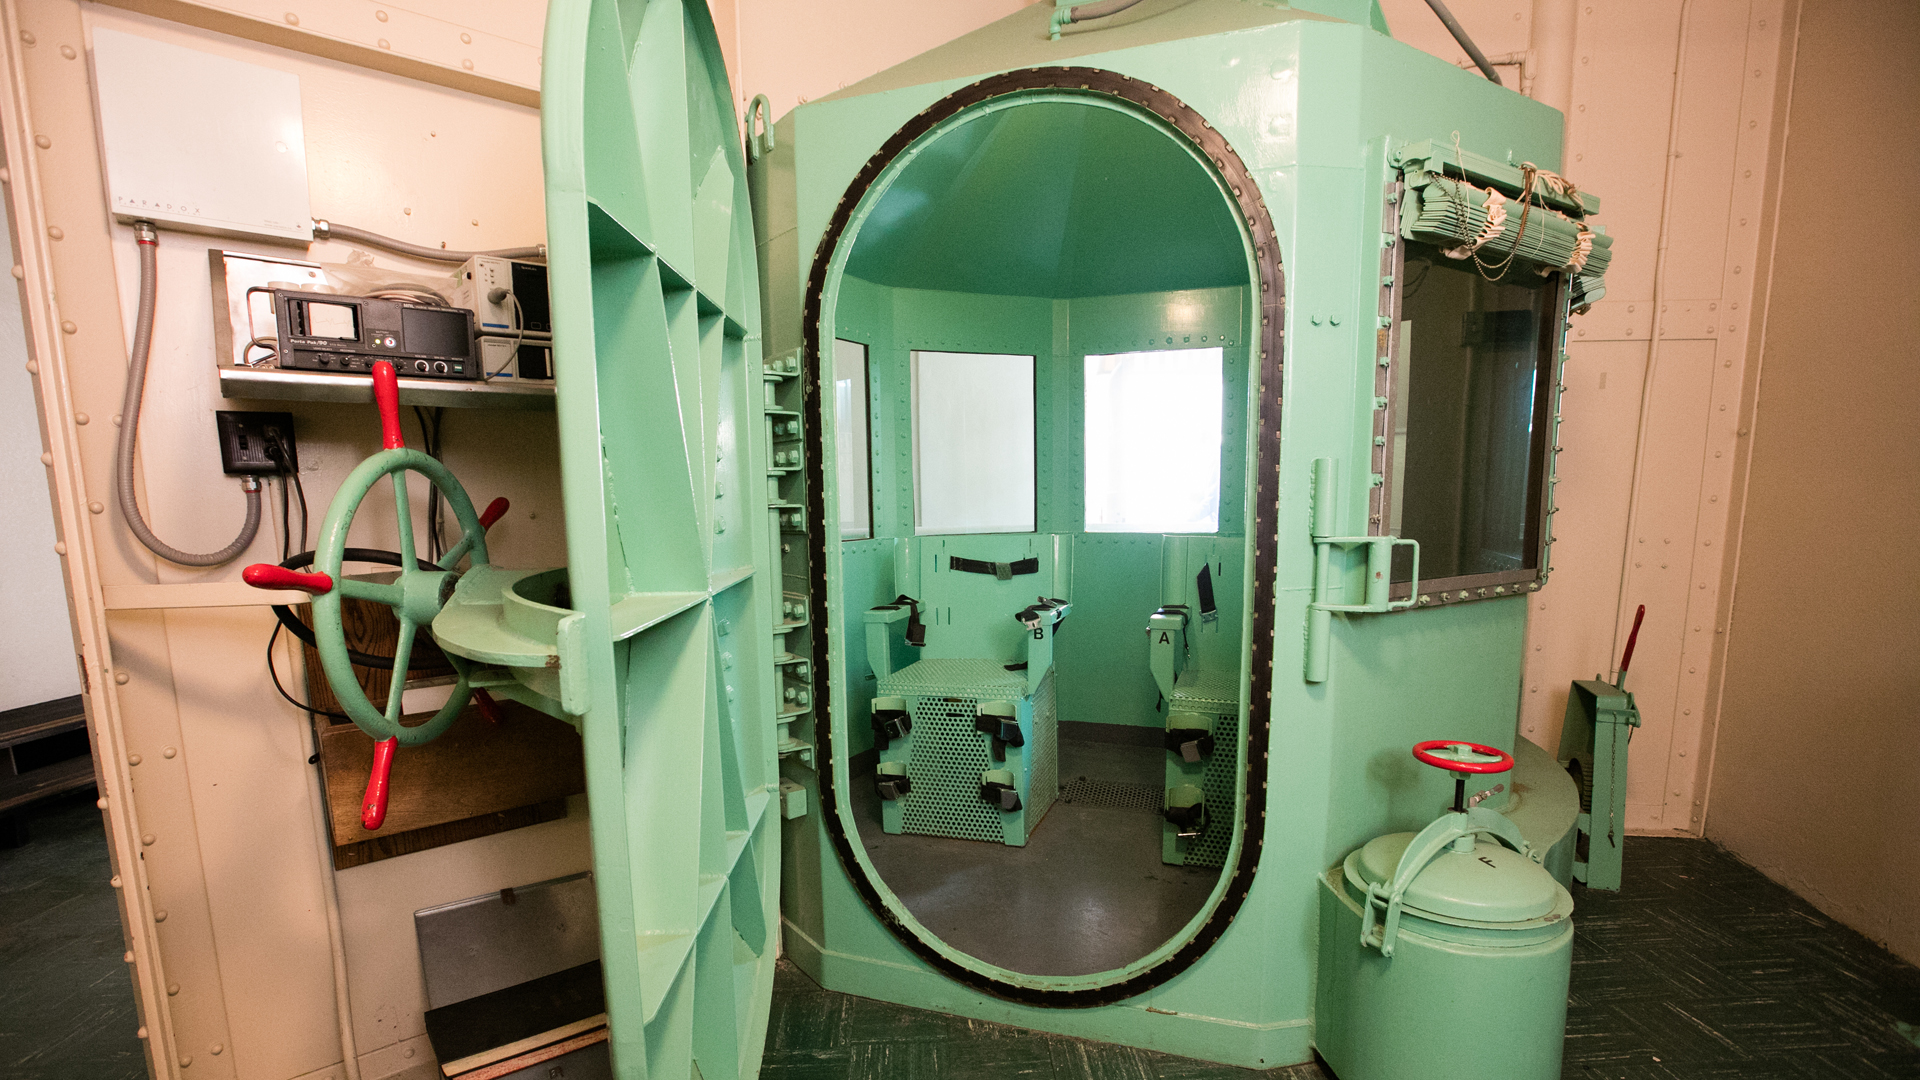 In this handout photo provided by California Department of Corrections and Rehabilitation, San Quentin's death row gas chamber is shown before being dismantled at San Quentin State Prison on March 13, 2019 in San Quentin, California. (Credit: California Department of Corrections and Rehabilitation via Getty Images)